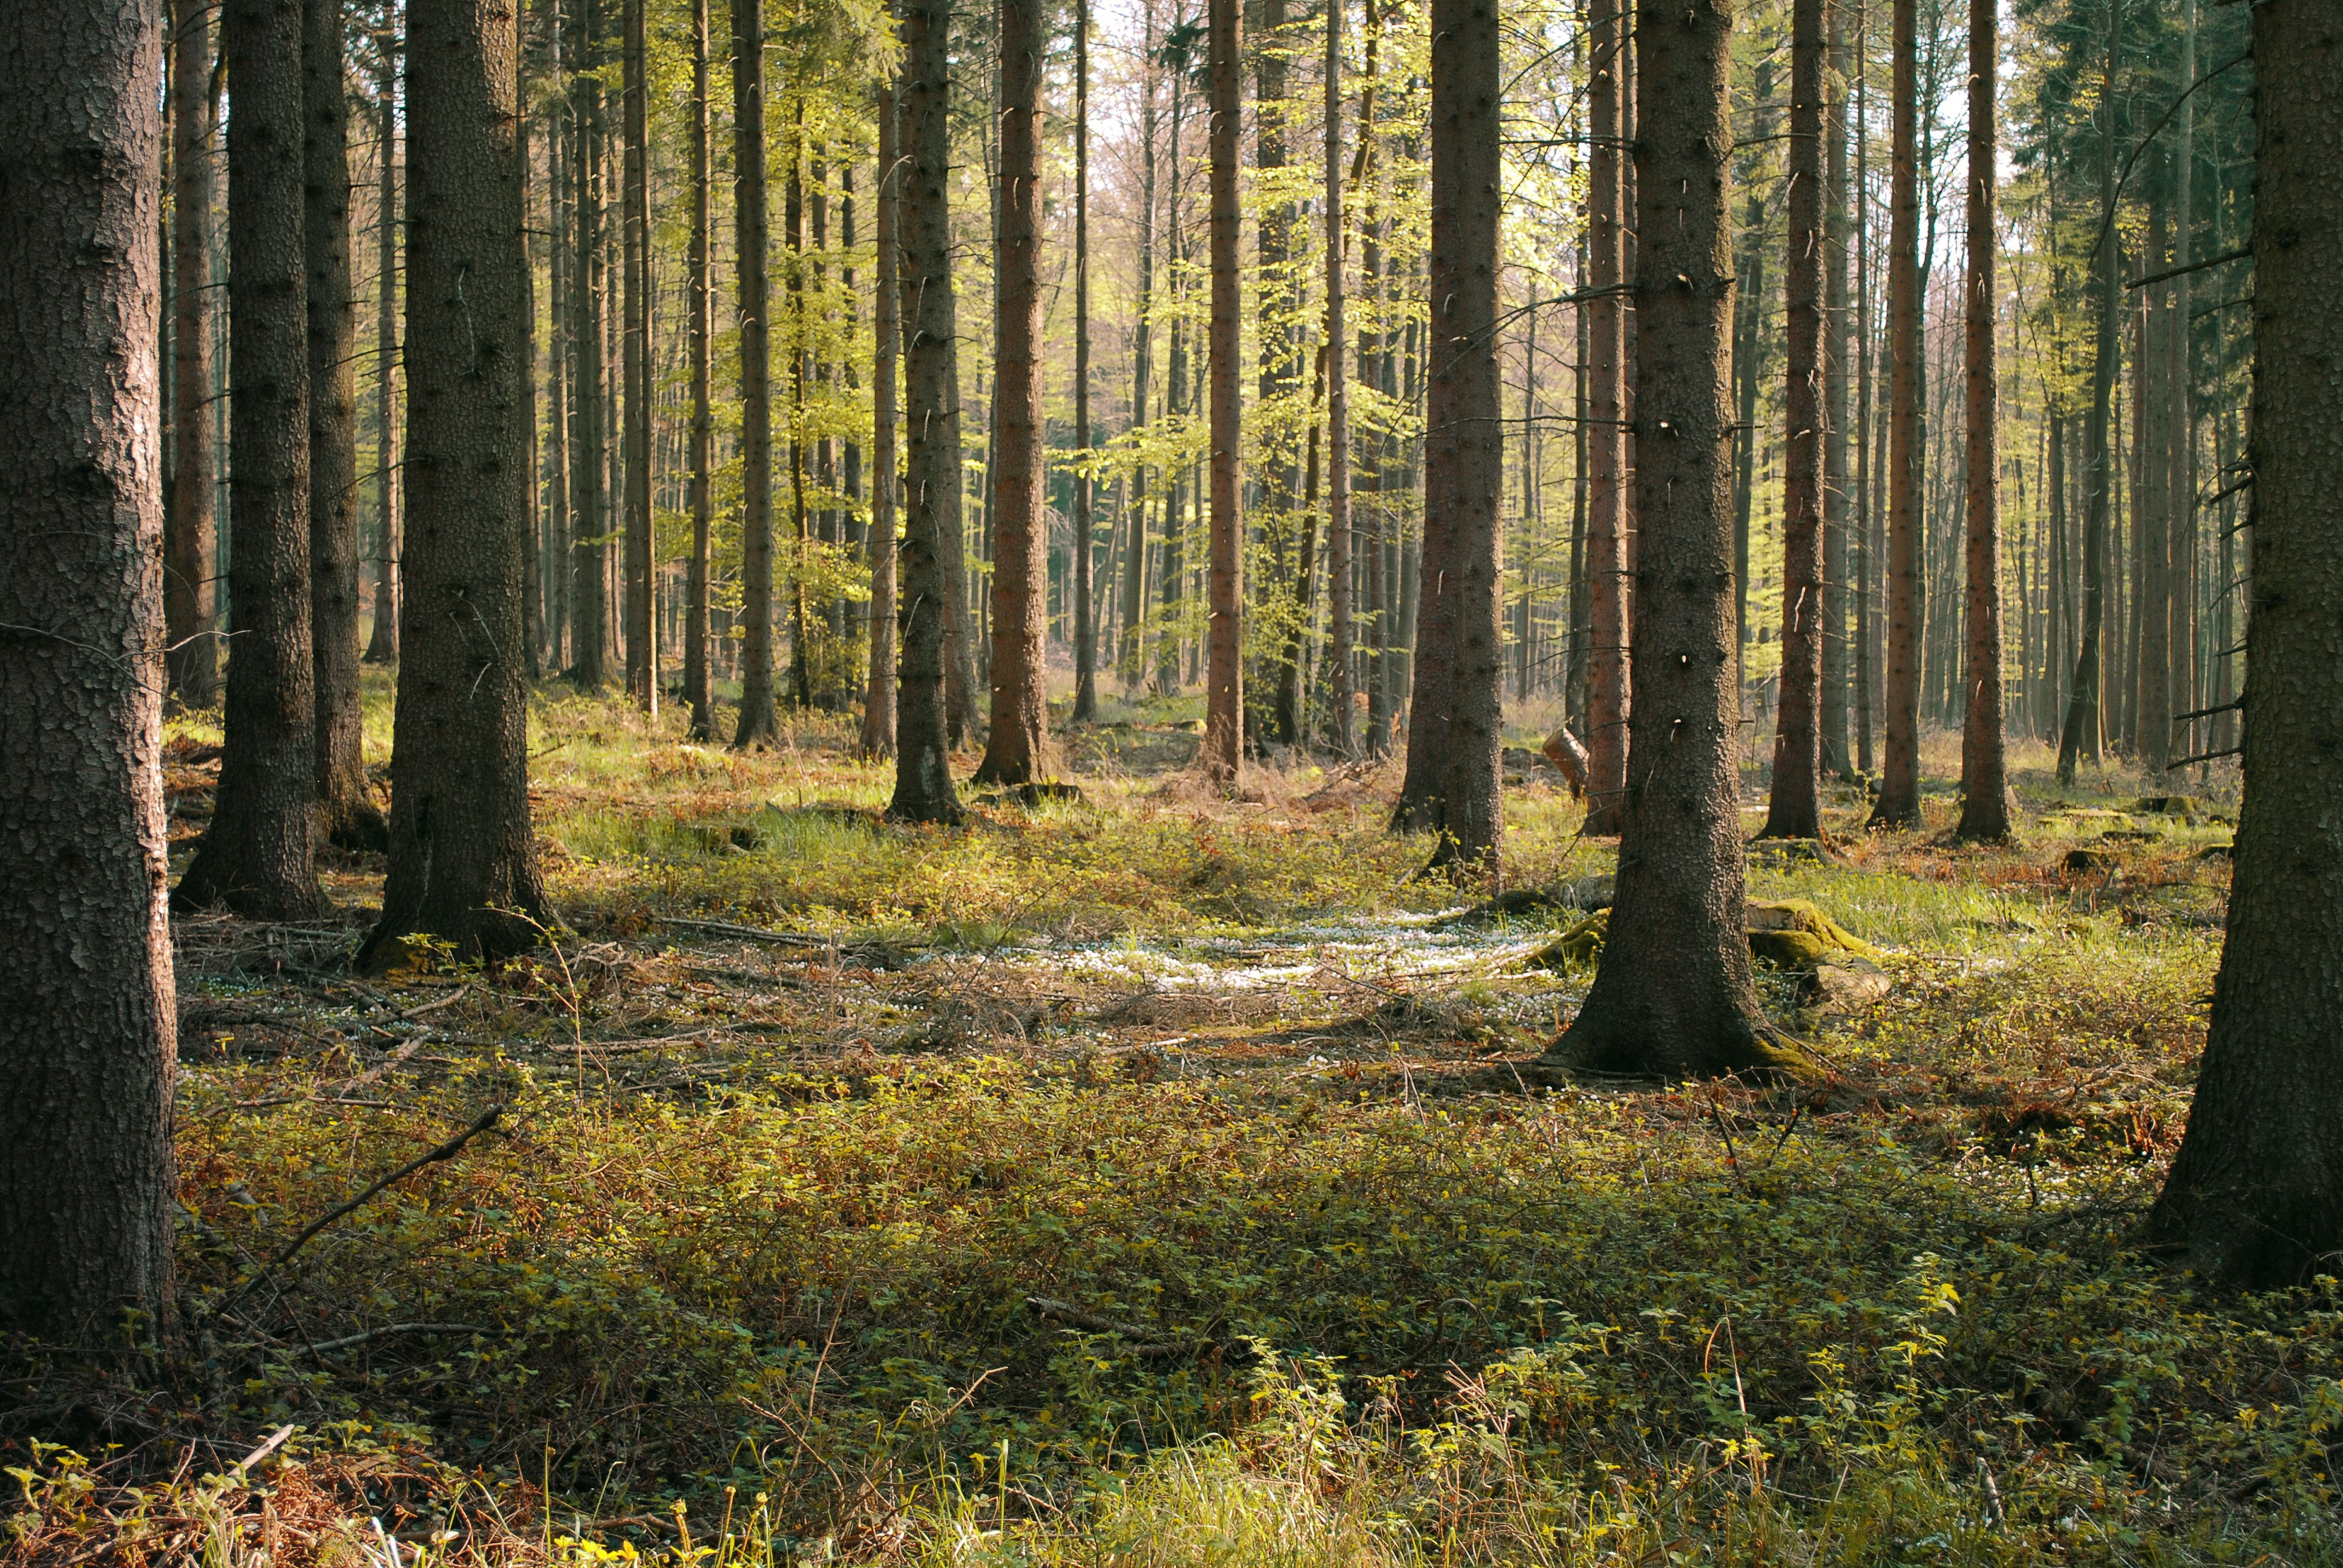 Sherwood Forest: a story alluring mystery